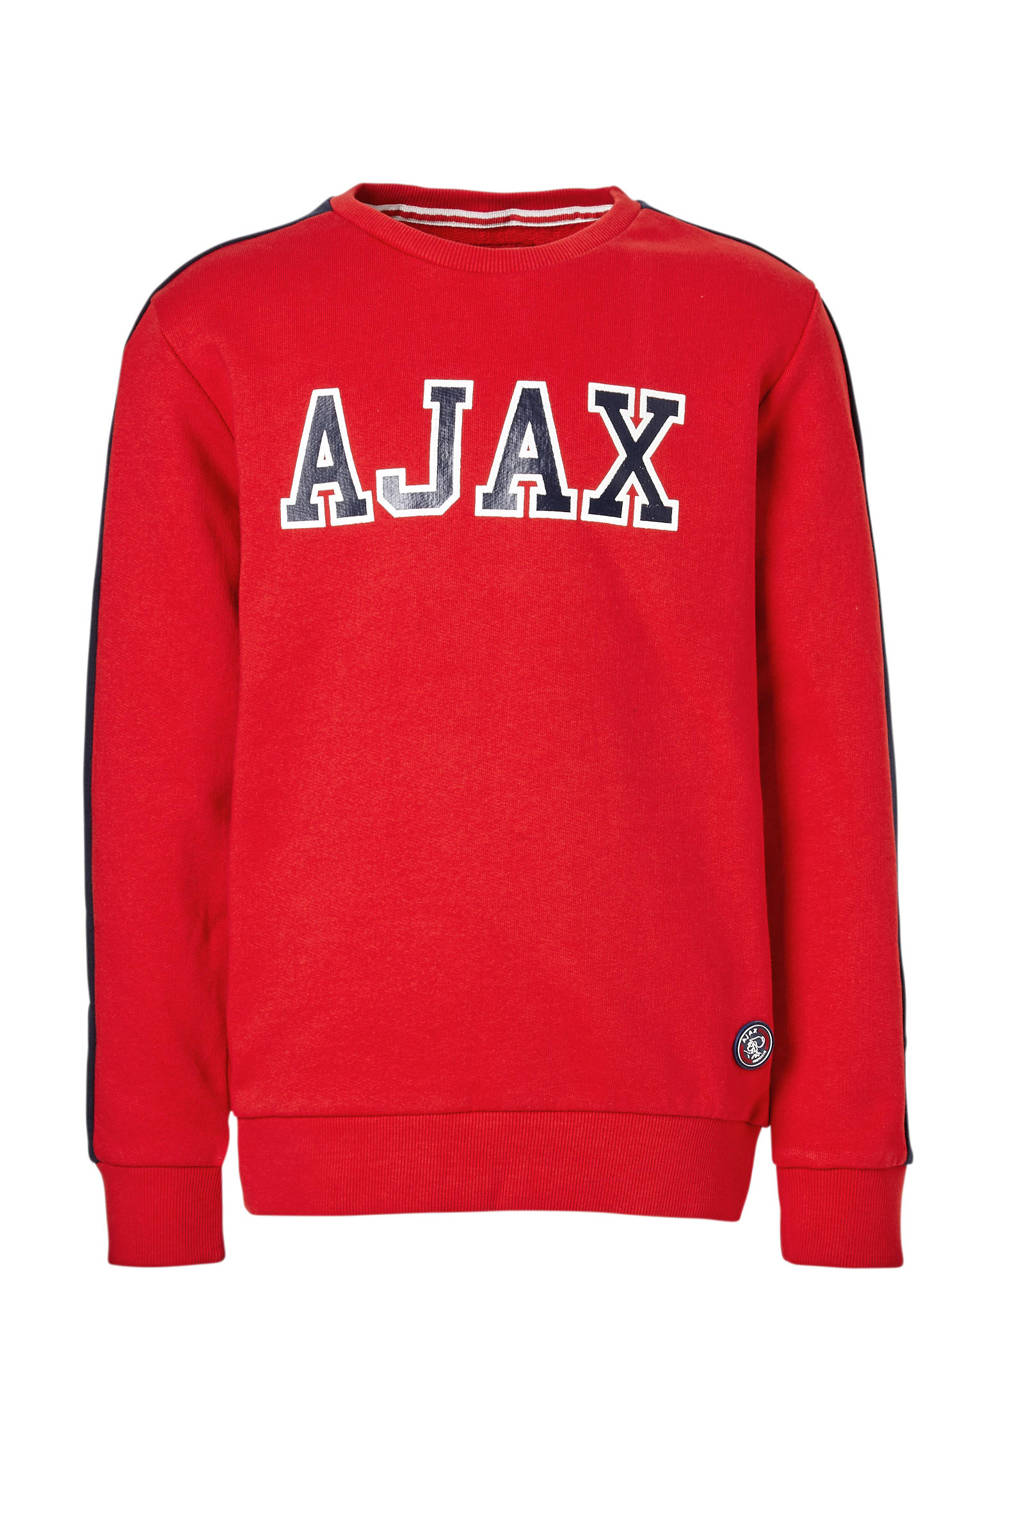 Ajax sweater Rowen rood, Rood/donkerblauw/wit